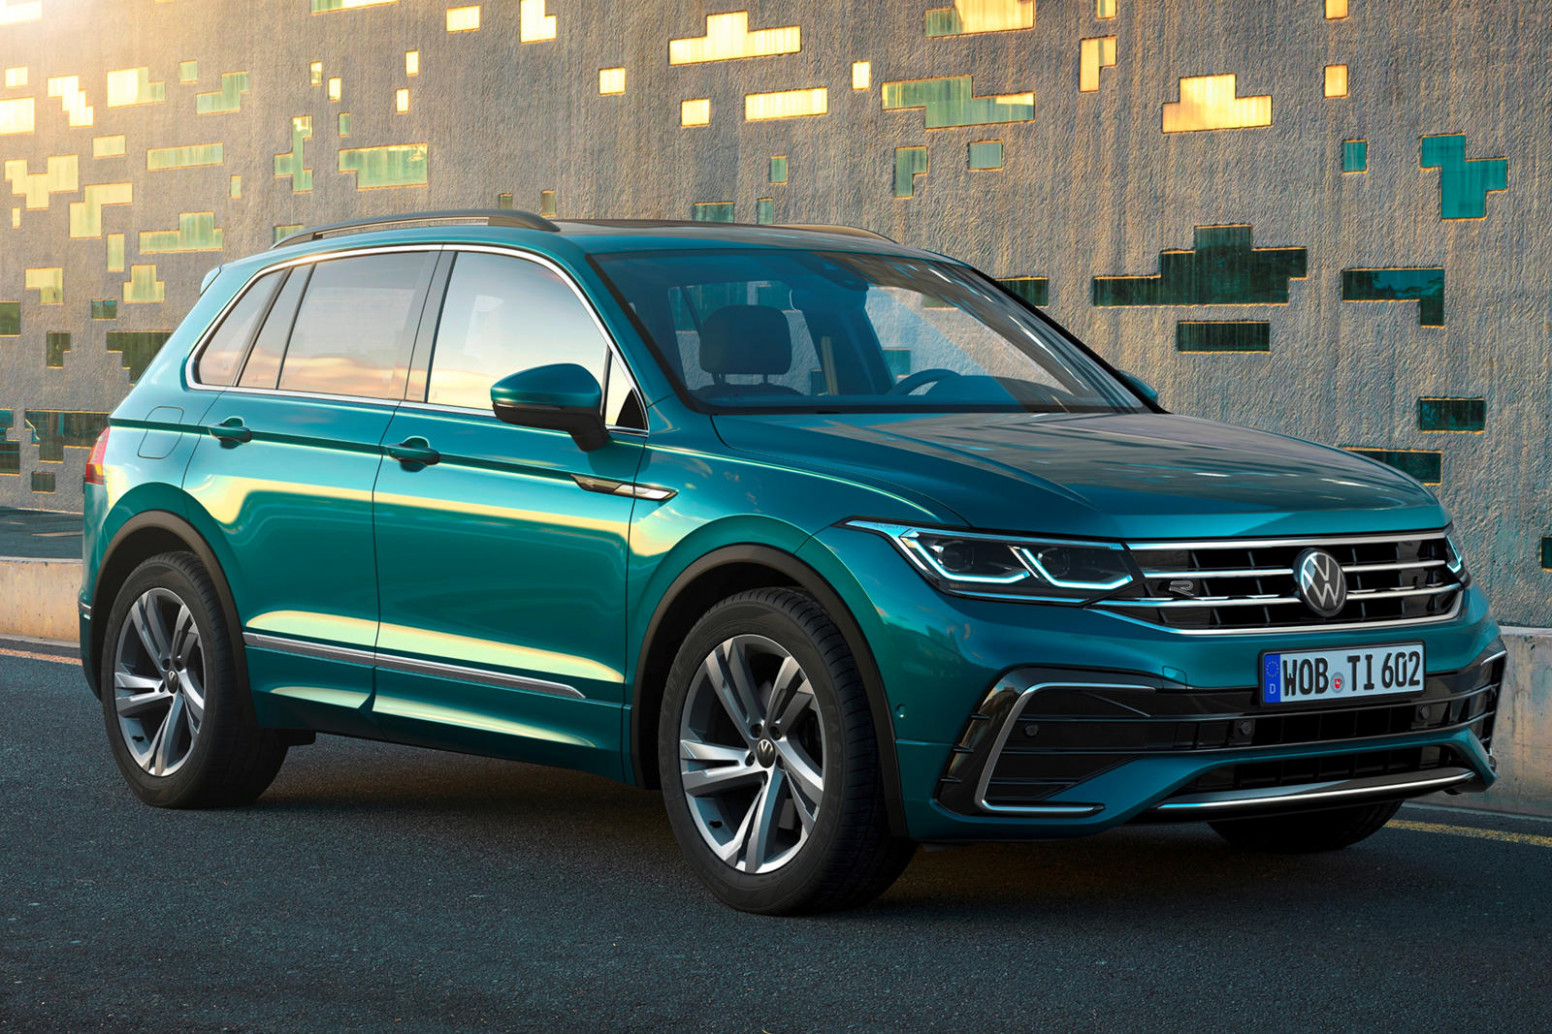 New Model and Performance 2022 Volkswagen Touareg